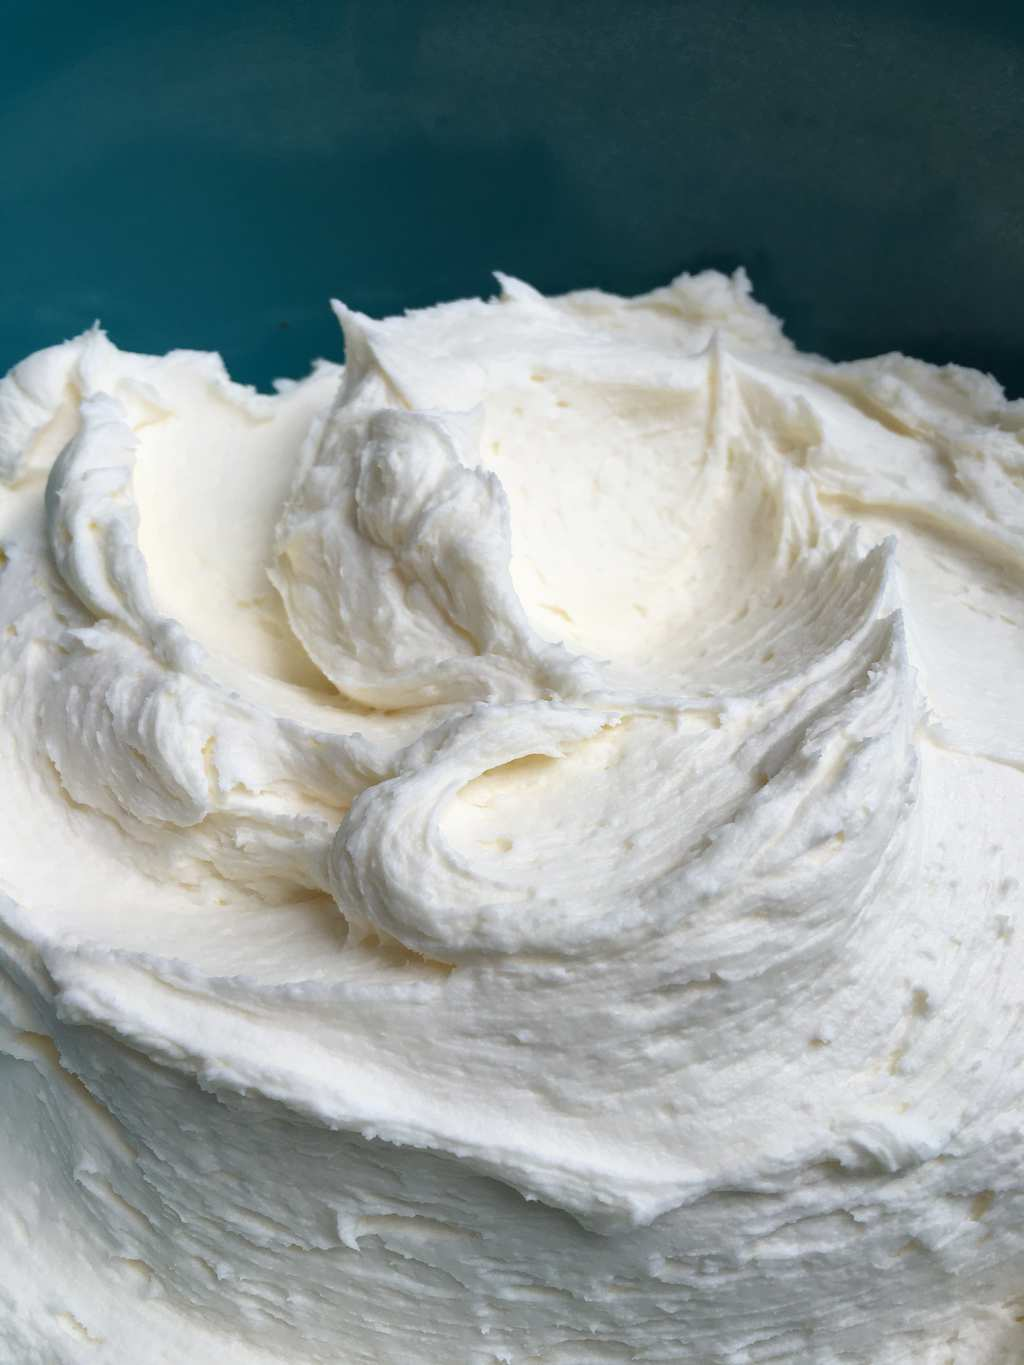 Fluffy vanilla frosting is a basic confectioners' sugar frosting that works for spreading, piping, decorating and delicious eating!